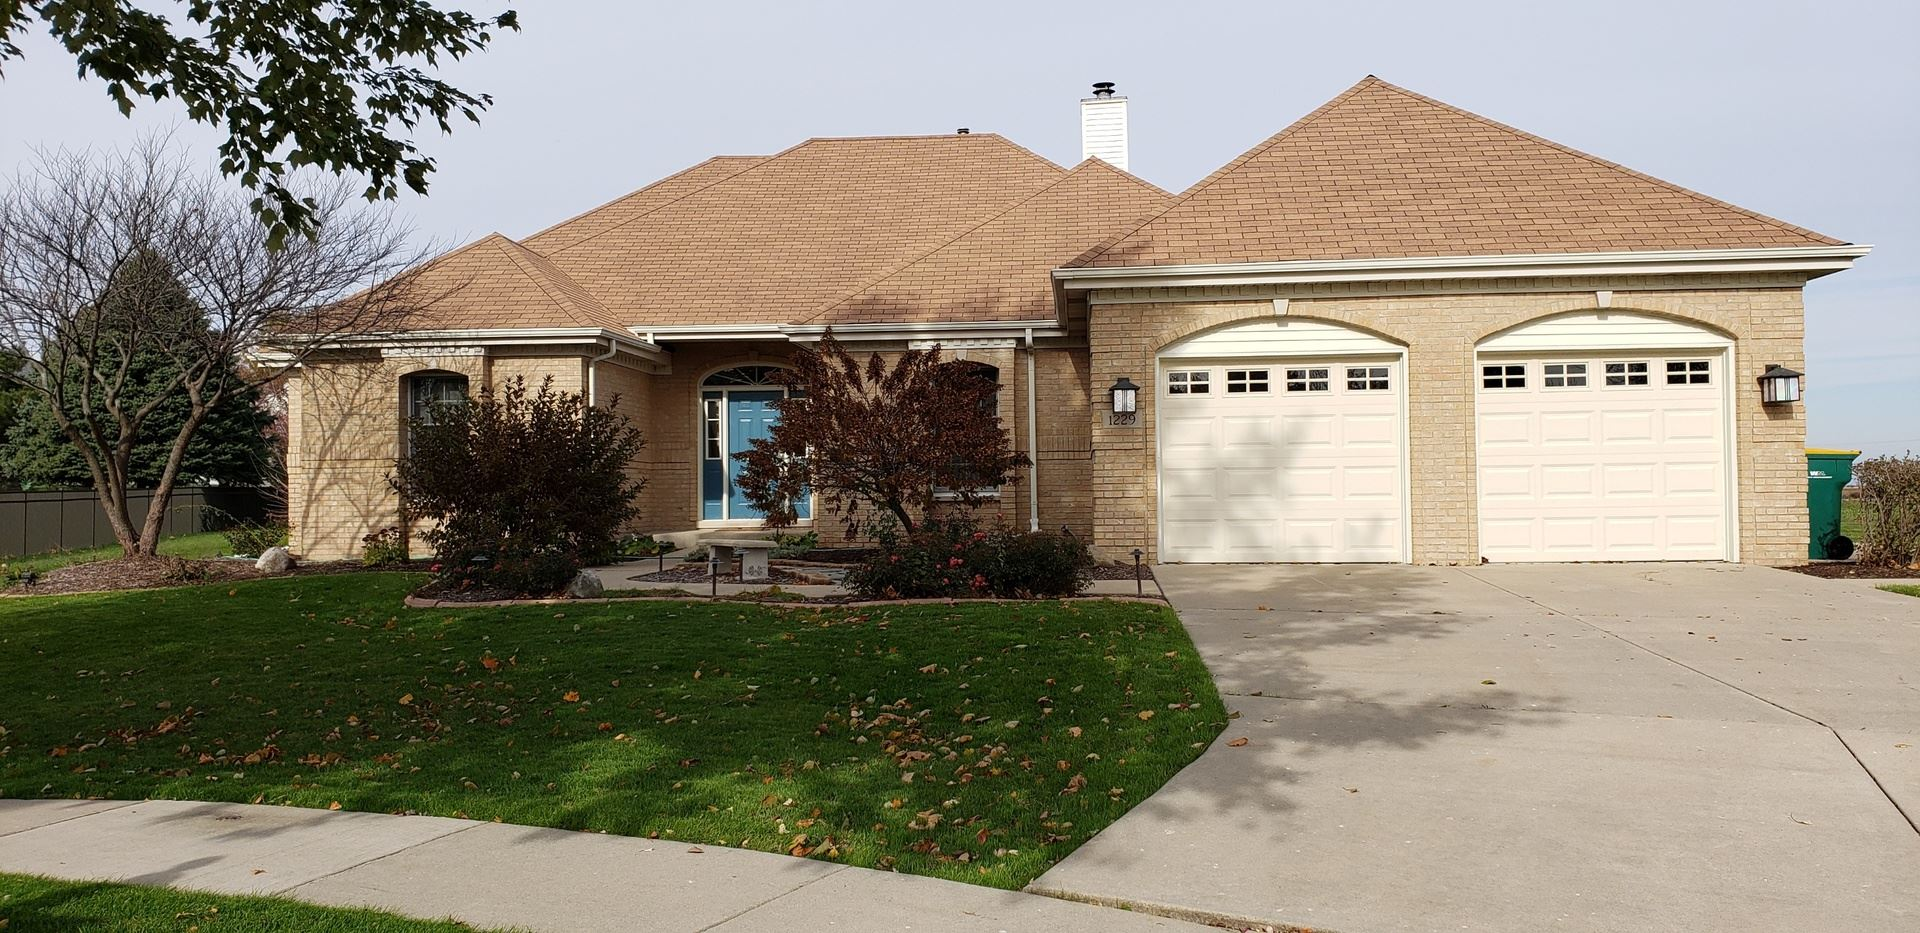 1229 Wales Court, Shorewood, IL 60404 - #: 10599416